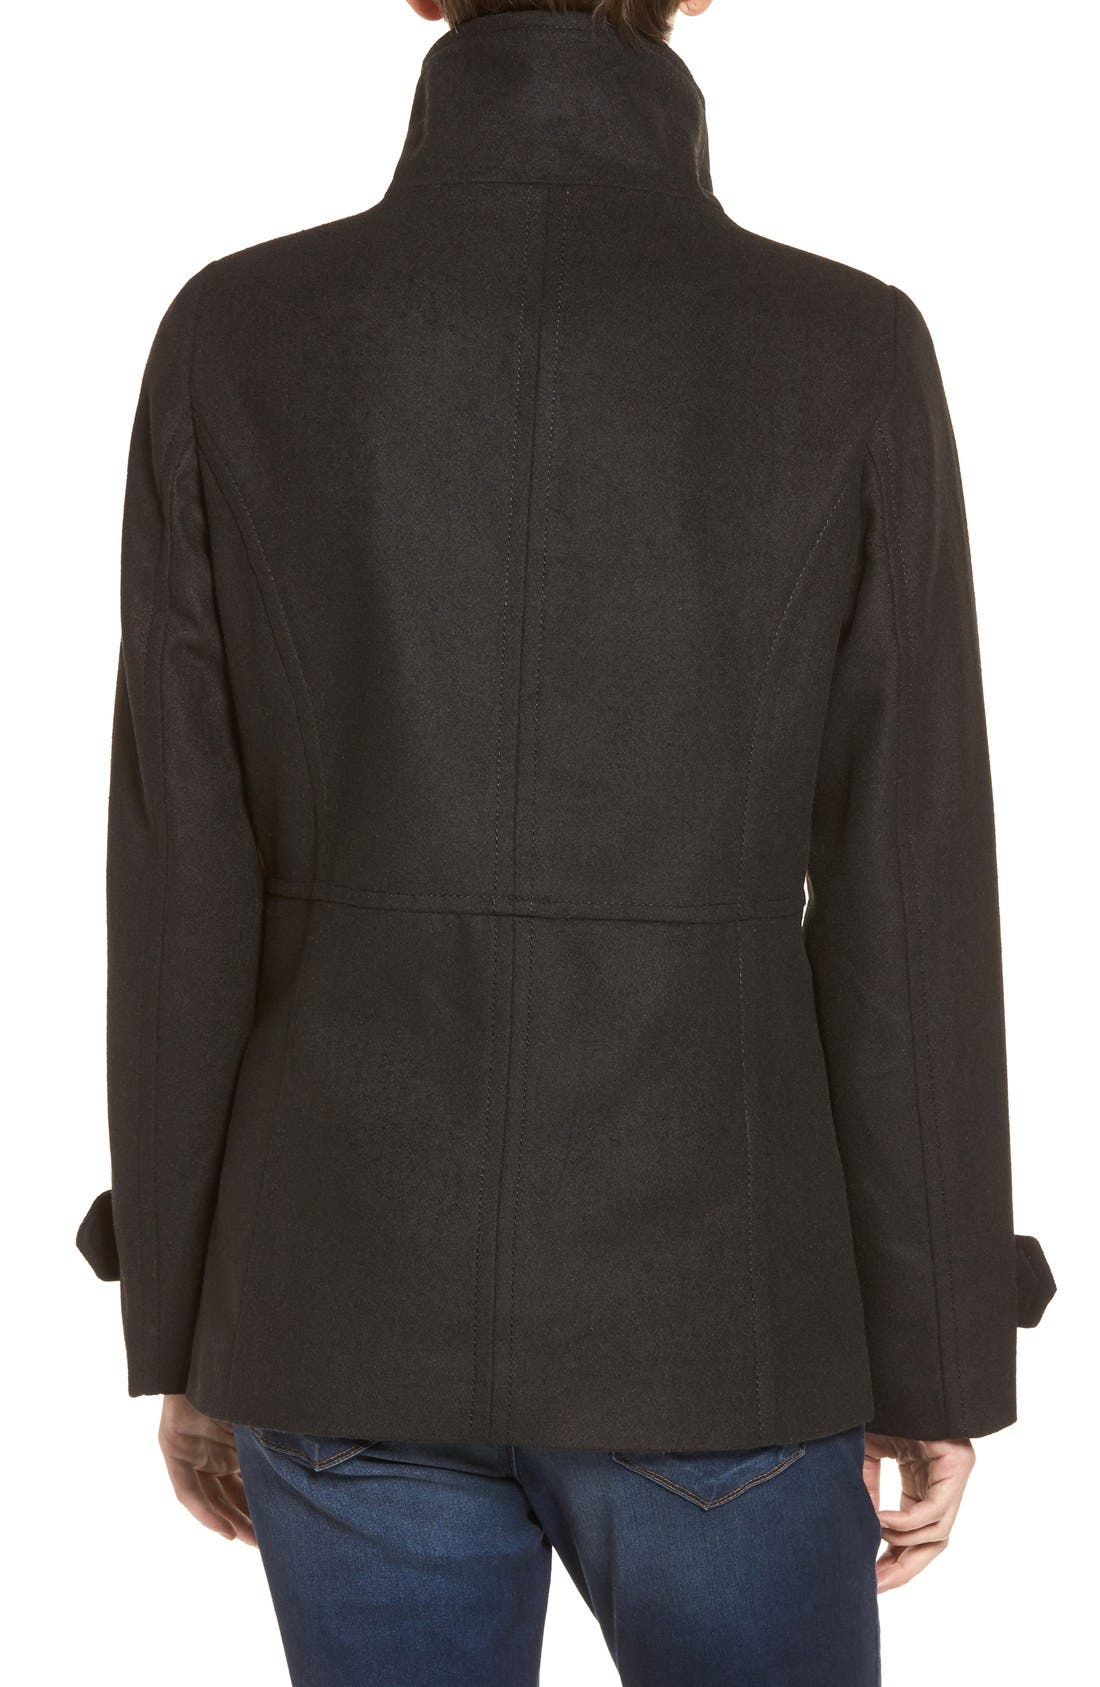 THREAD & SUPPLY,                             Double Breasted Peacoat,                             Alternate thumbnail 4, color,                             BLACK